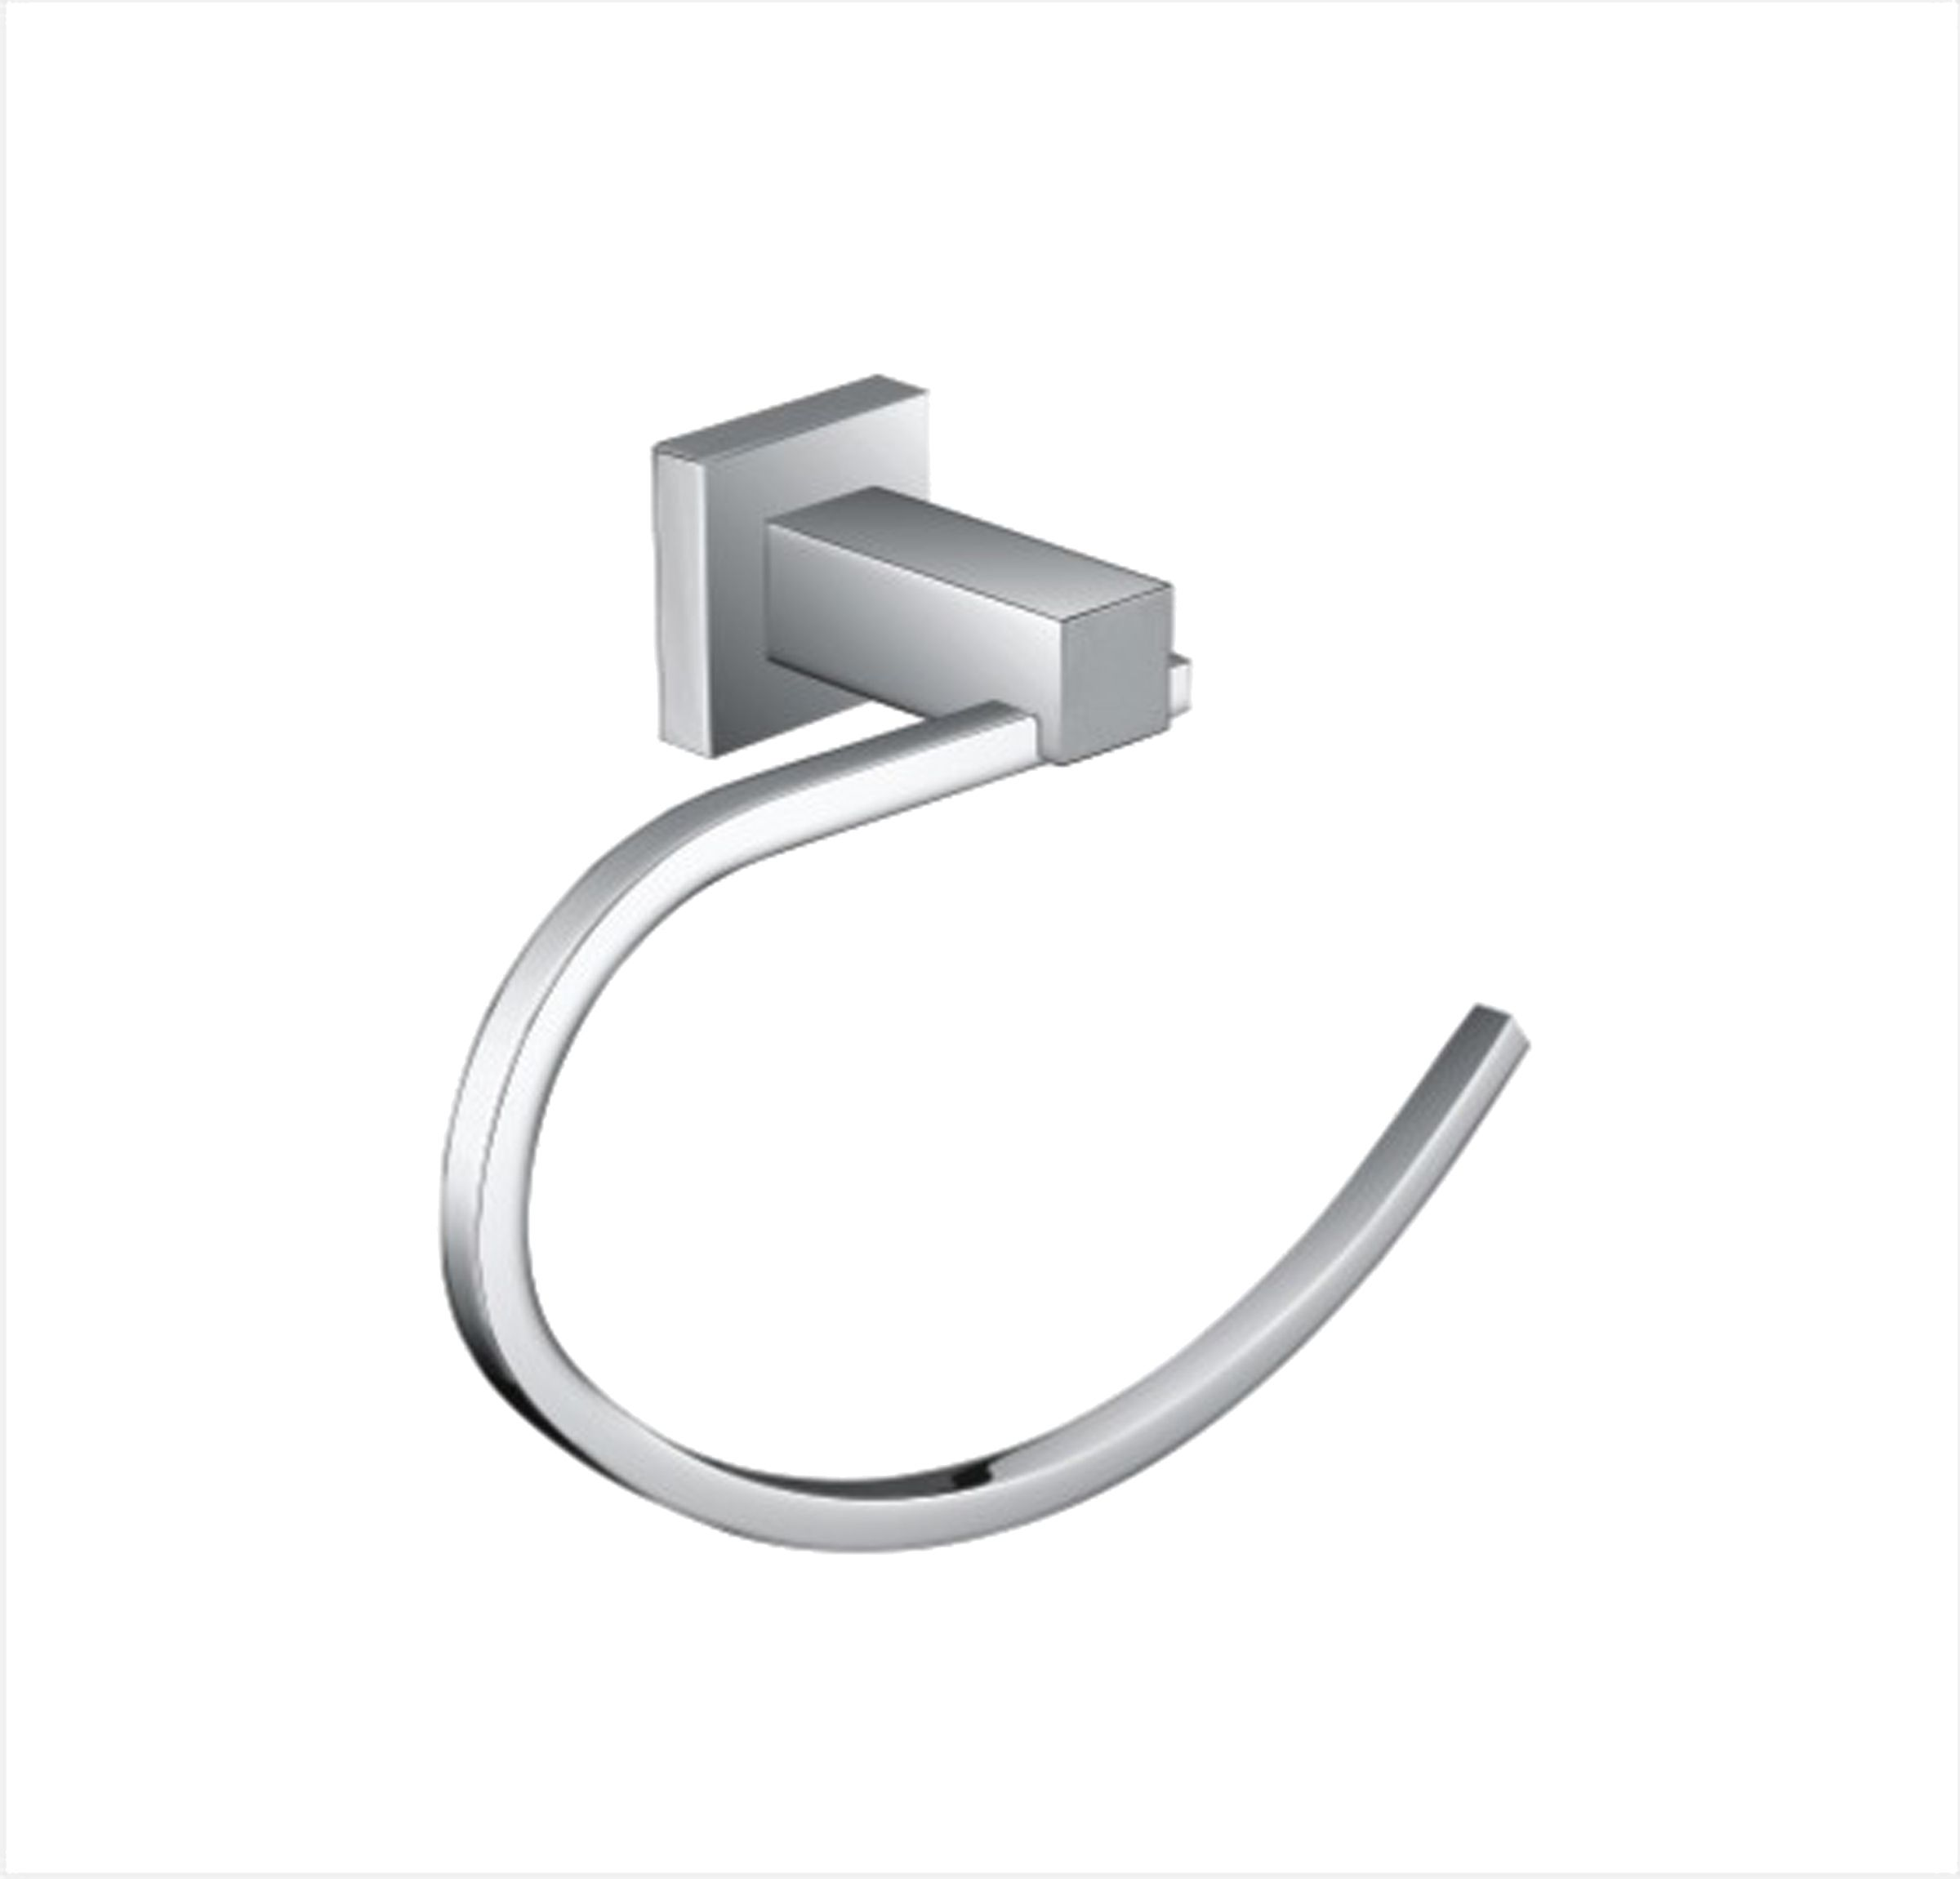 Square Towel Ring Bathroom Accessories Perth Alpine